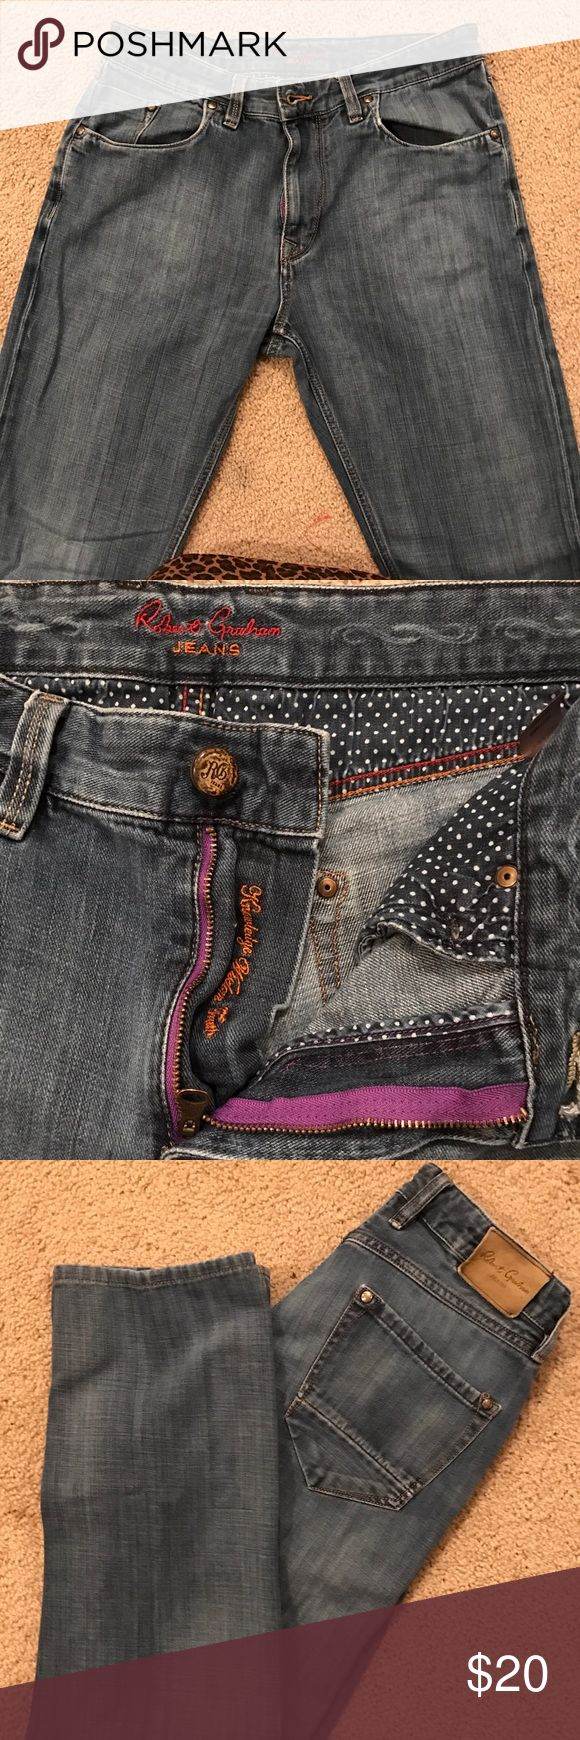 Robert Graham men's jeans Robert Graham classicYates indigo denim jeans. These will become your favorite denim jeans. The inseam is 30' Robert Graham Jeans Relaxed